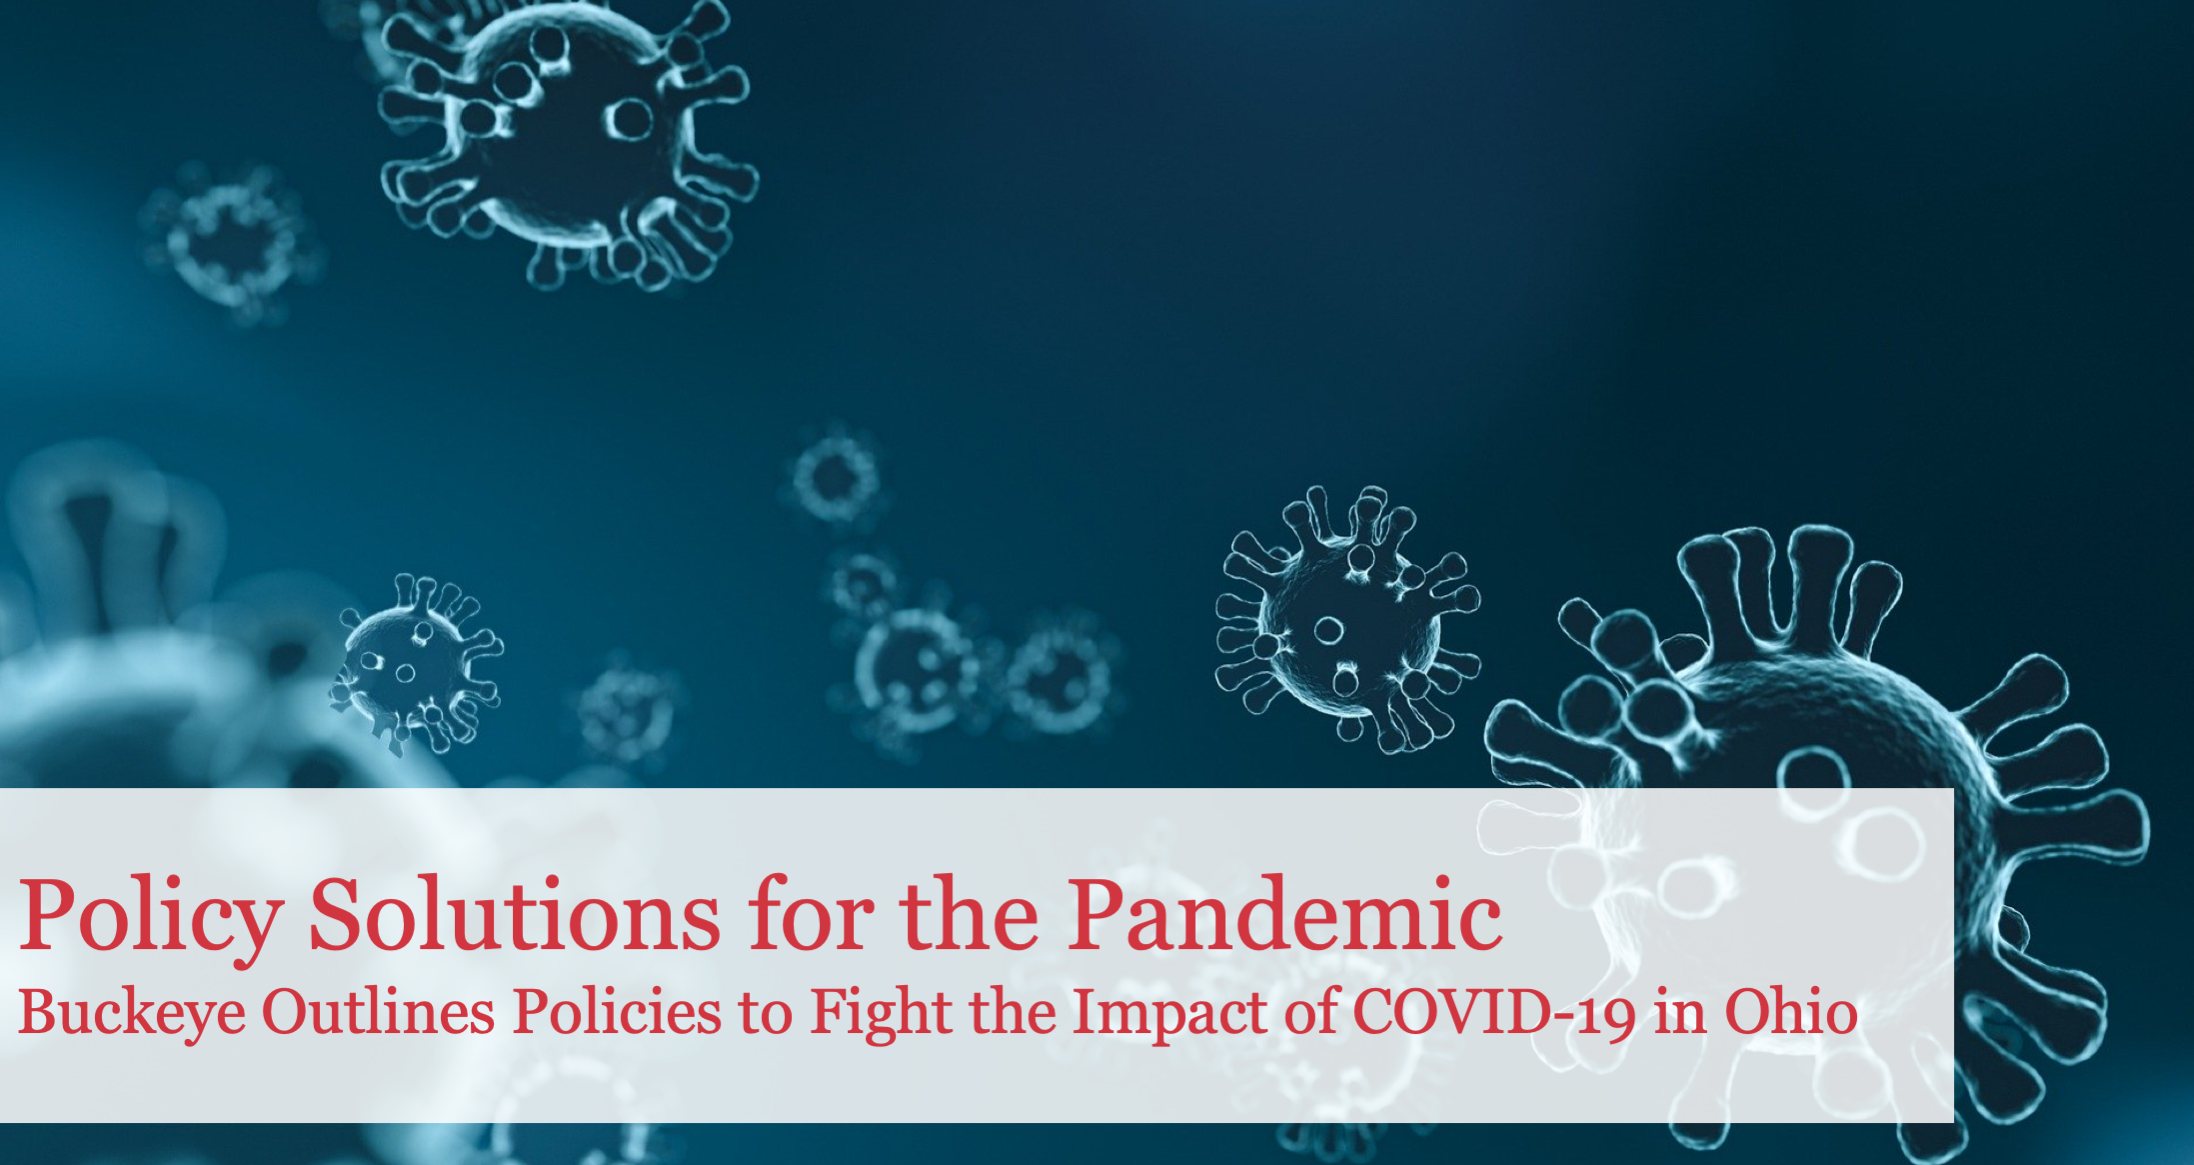 The Buckeye Institute Outlines Policy Solutions to Fight the Impact of COVID-19 in Ohio